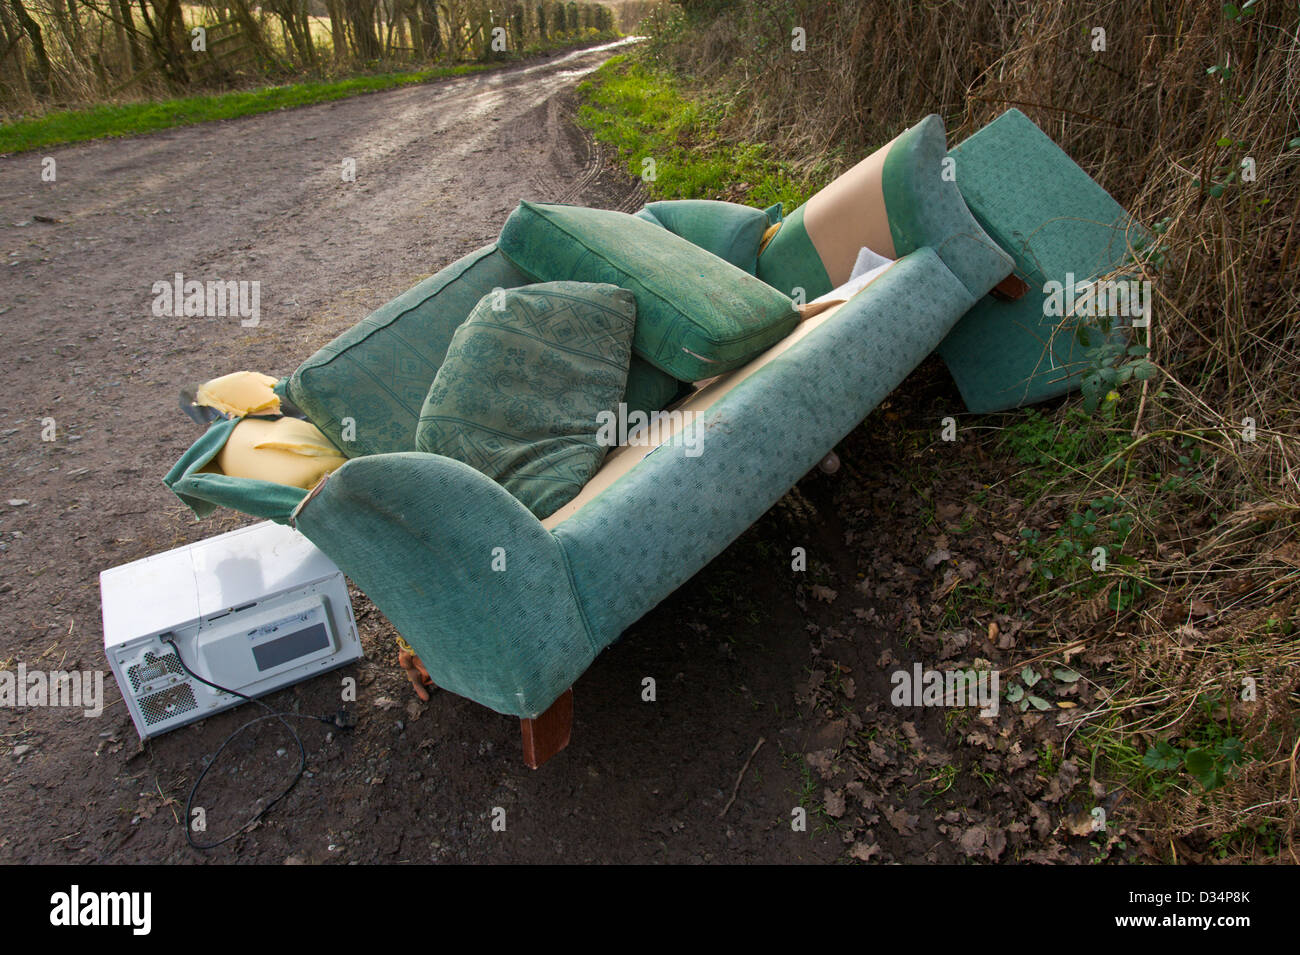 Microwave, Sofa And Chair, Furniture Dumped Fly Tipping On A Country Lane  At The Warren, Hay On Wye, Powys, Wales, UK